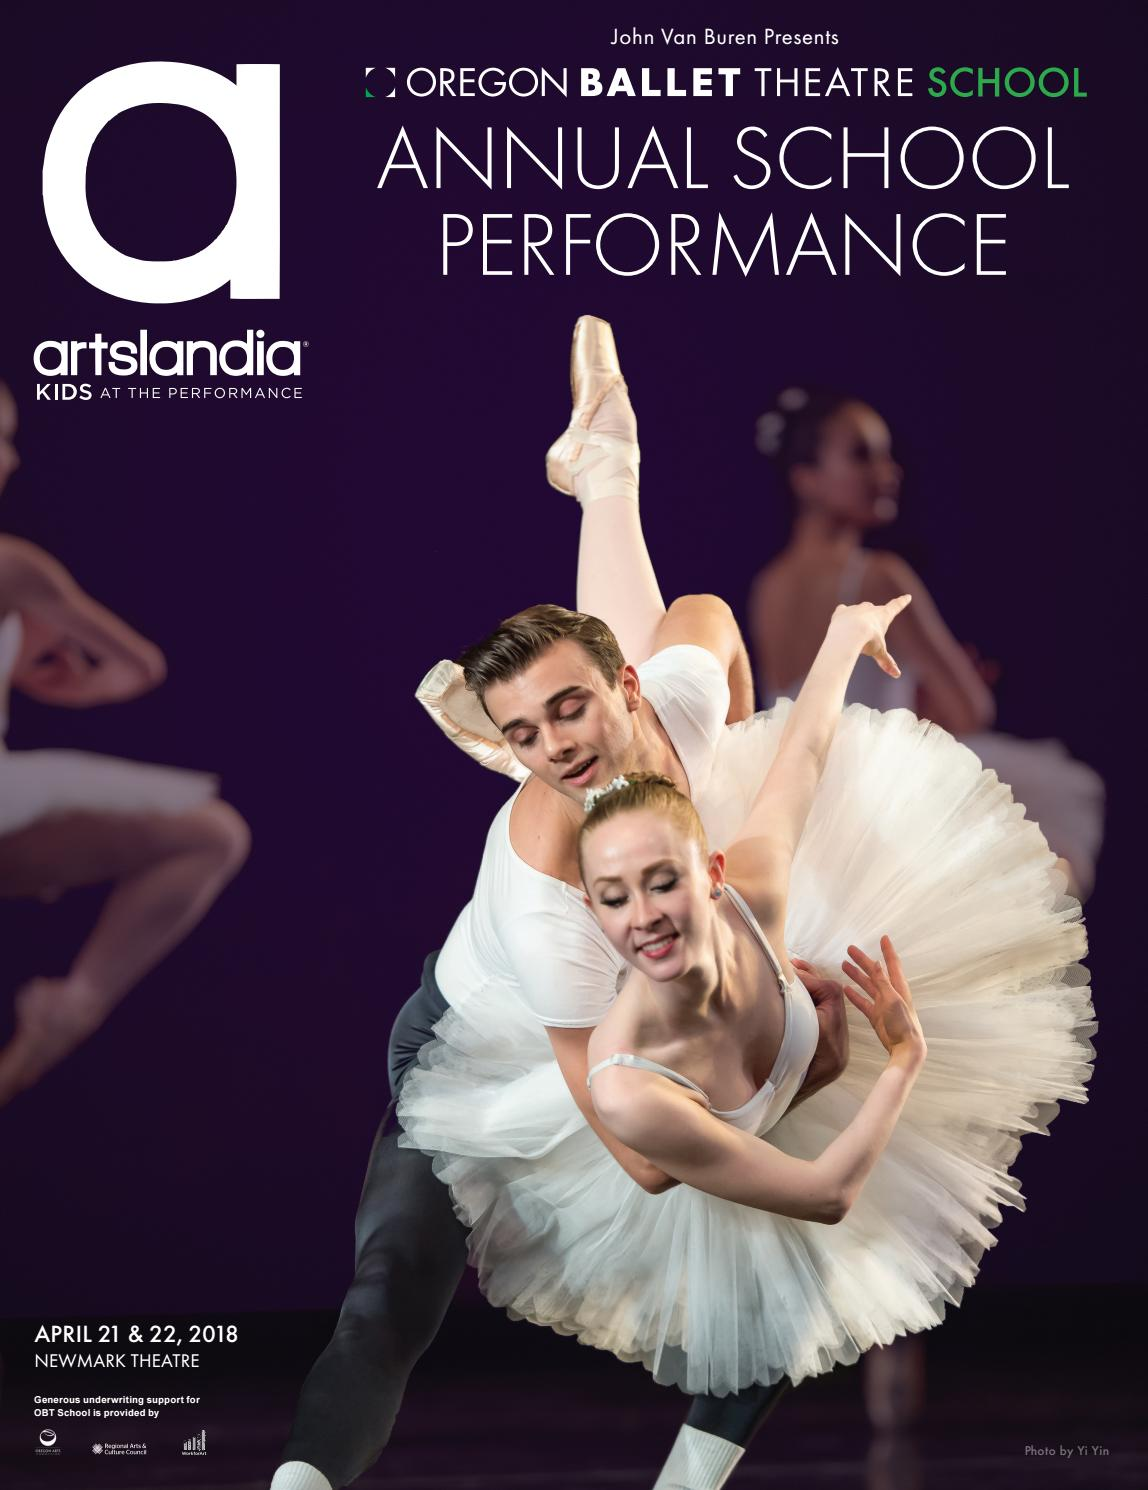 Oregon Ballet Theater 2018 Annual School Performance by Artslandia